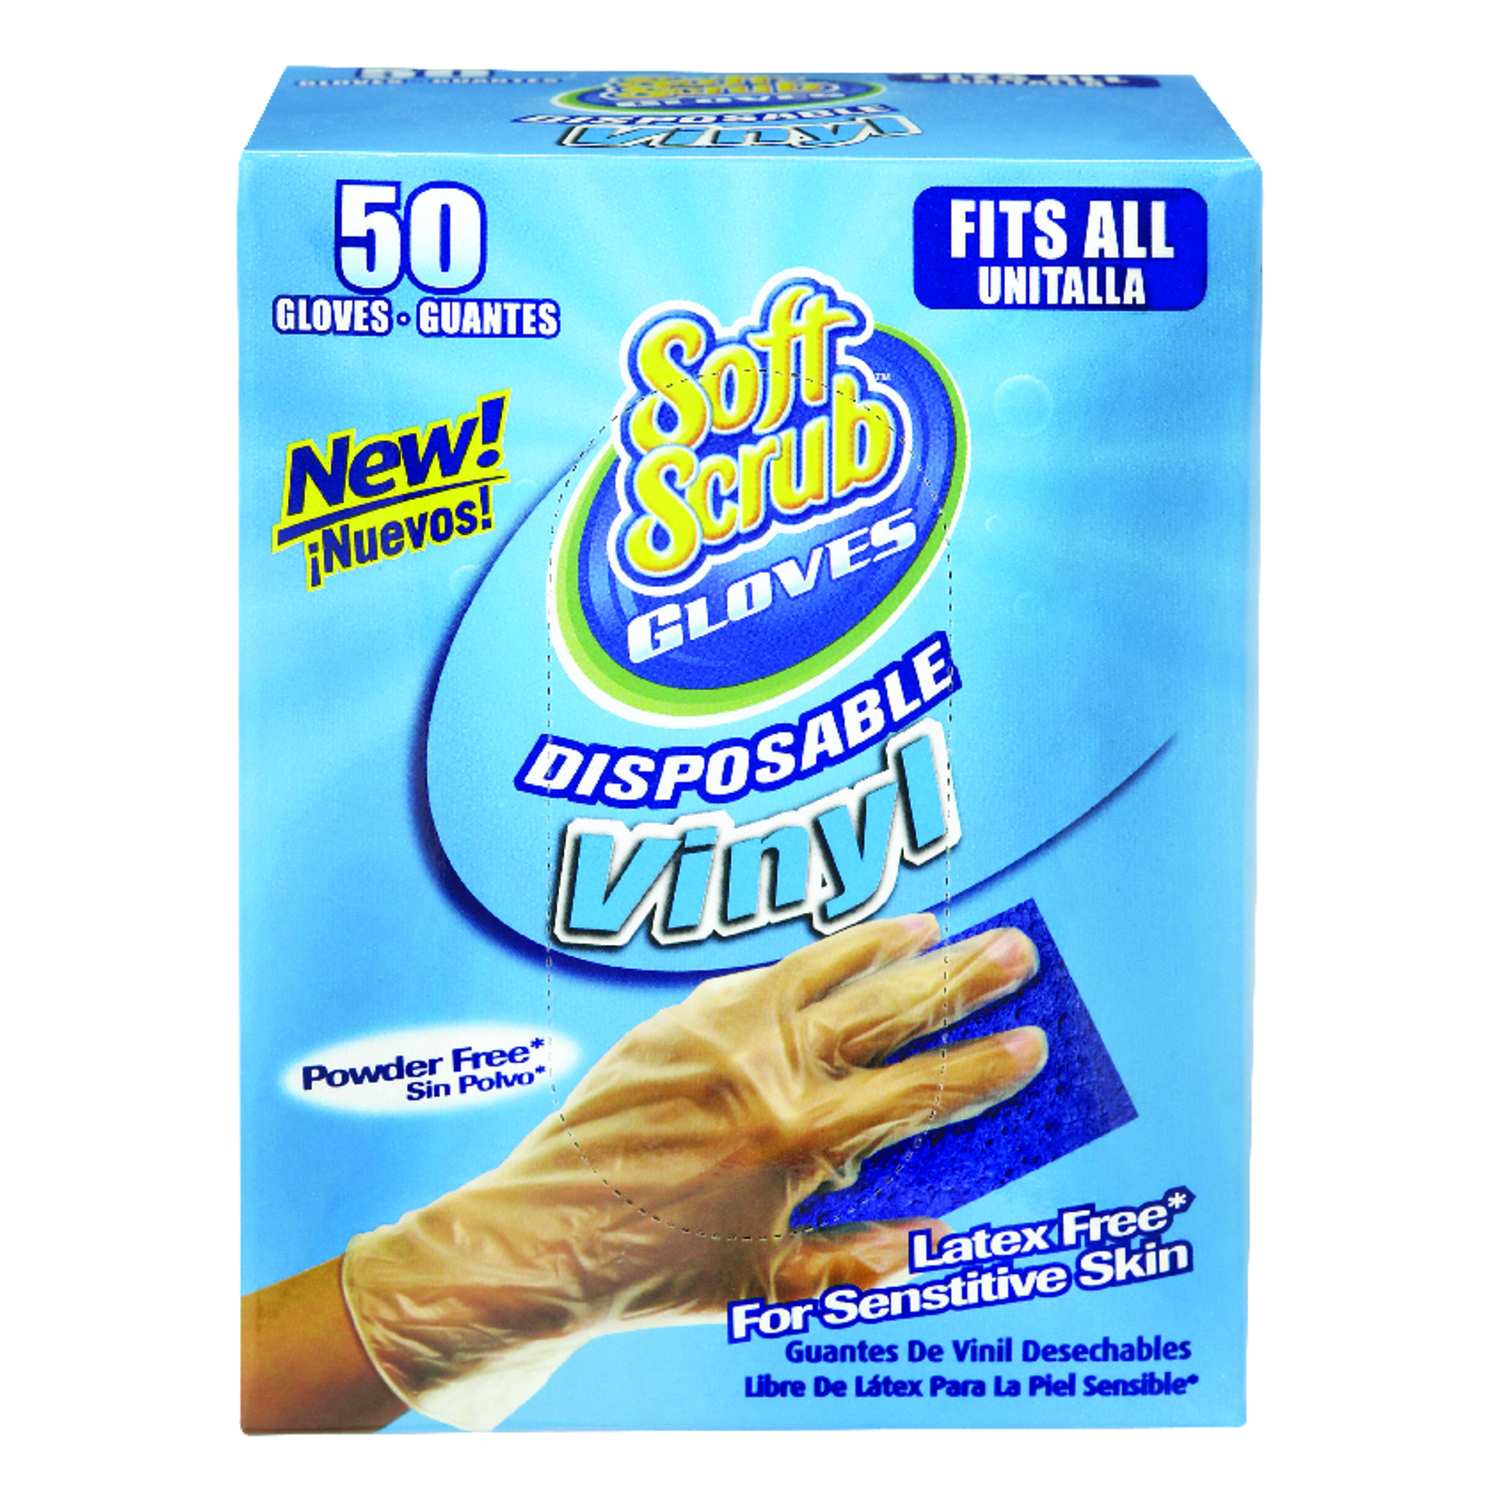 Soft Scrub  Vinyl  Disposable Gloves  One Size Fits All  50 pk Clear